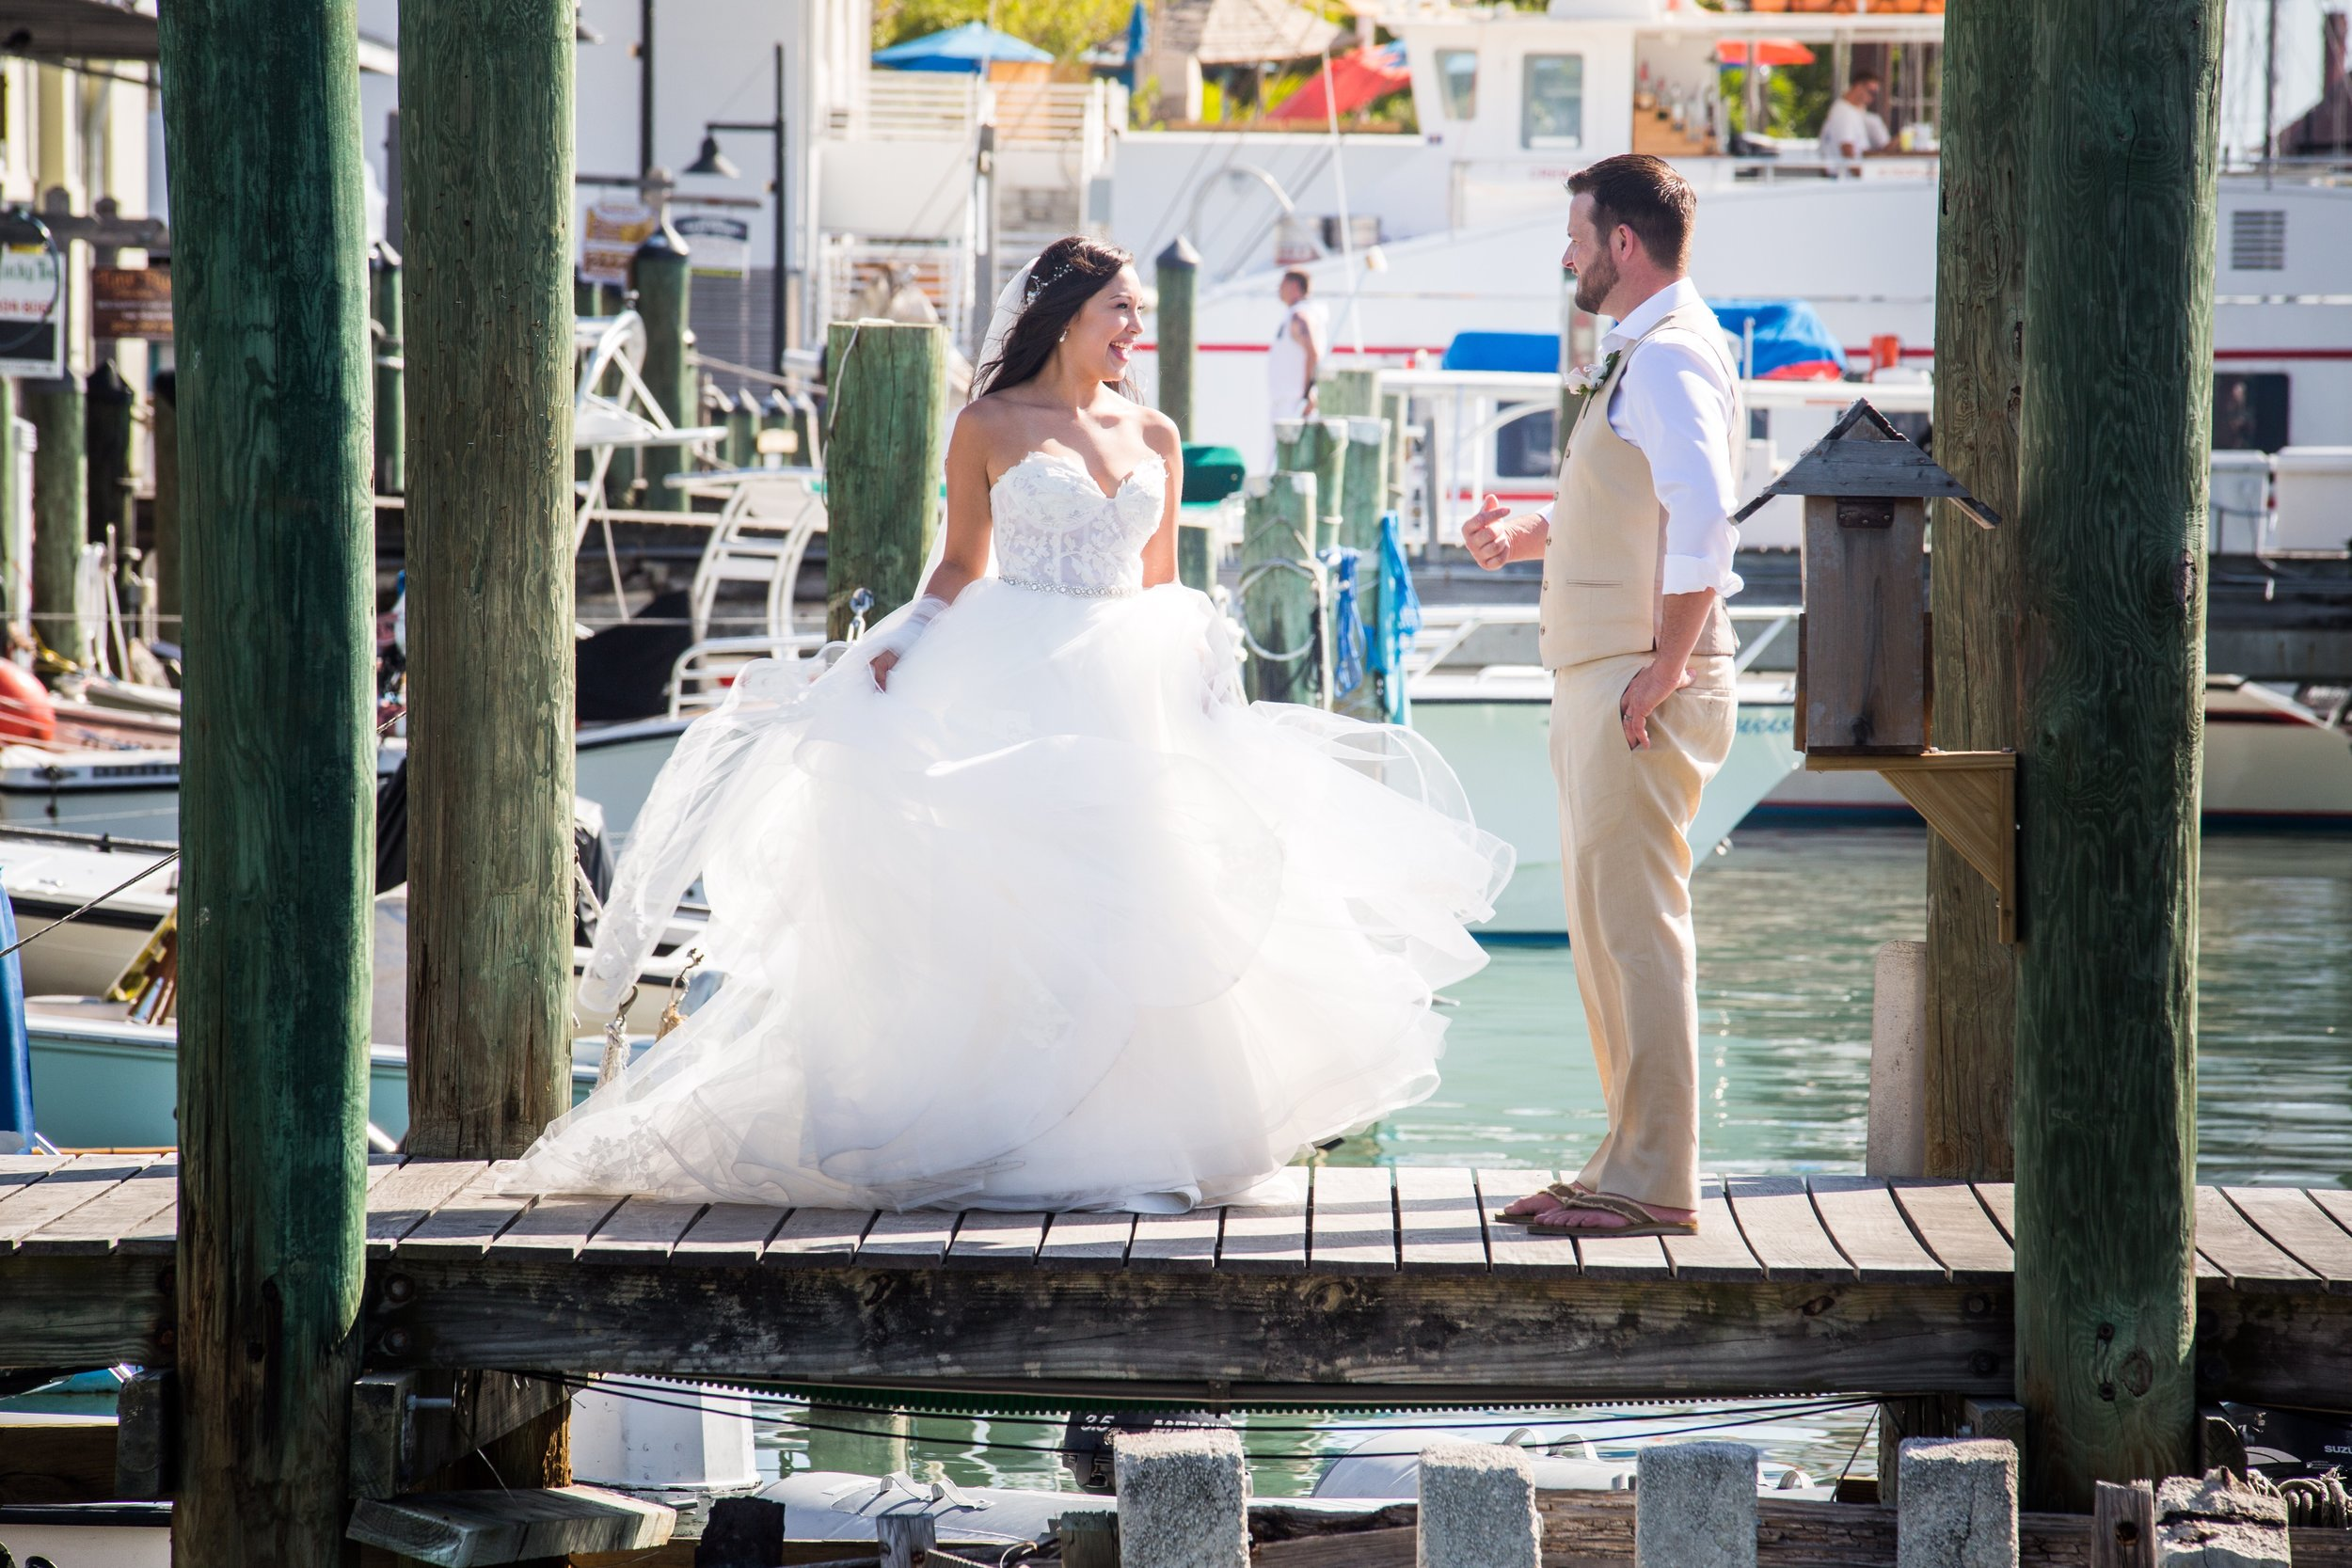 Playing with wedding dress on the docks in Key West Bight